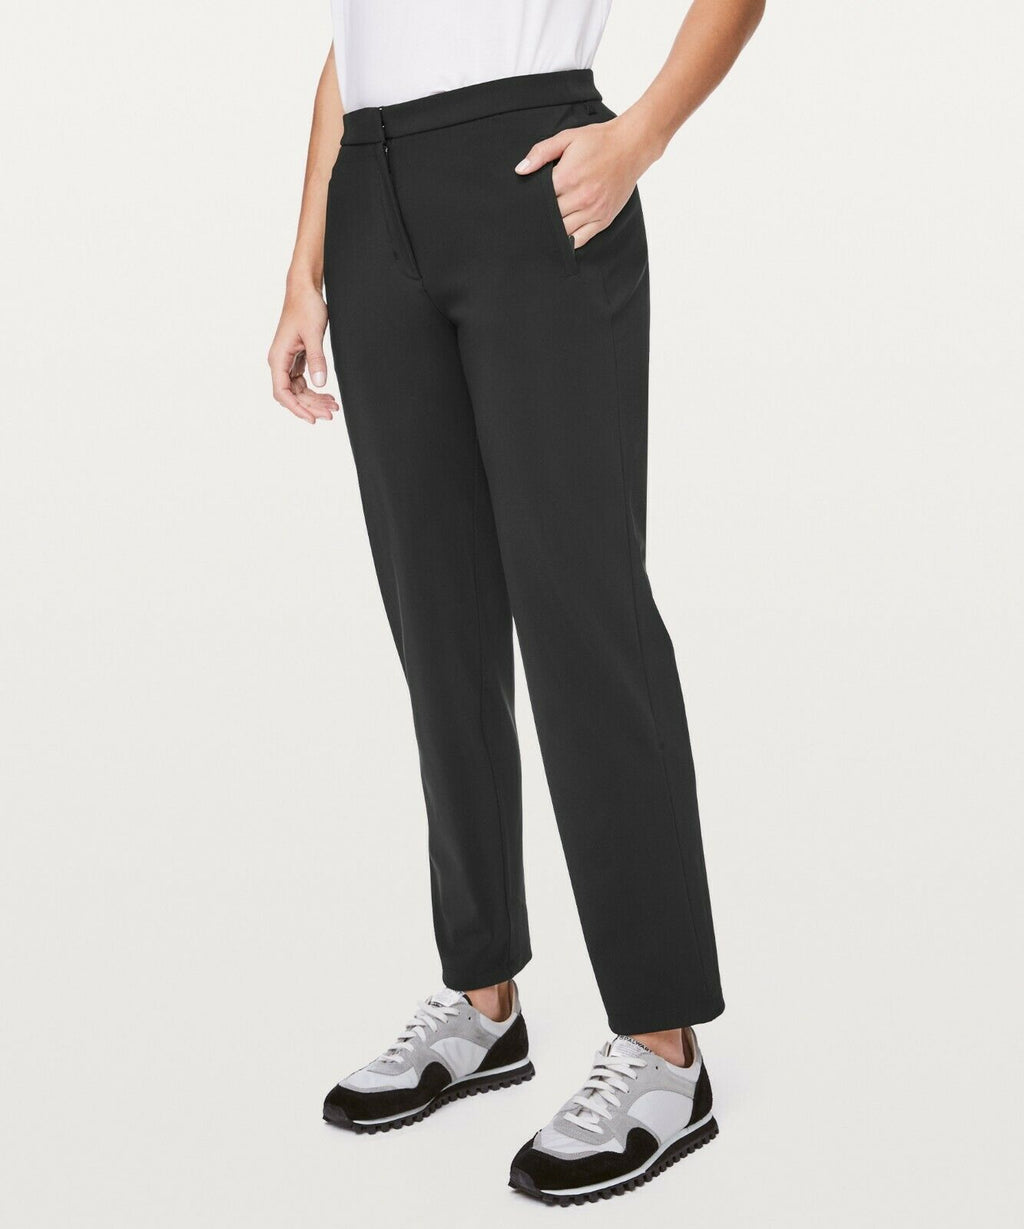 Lululemon Size 8 Black On The Move Pant